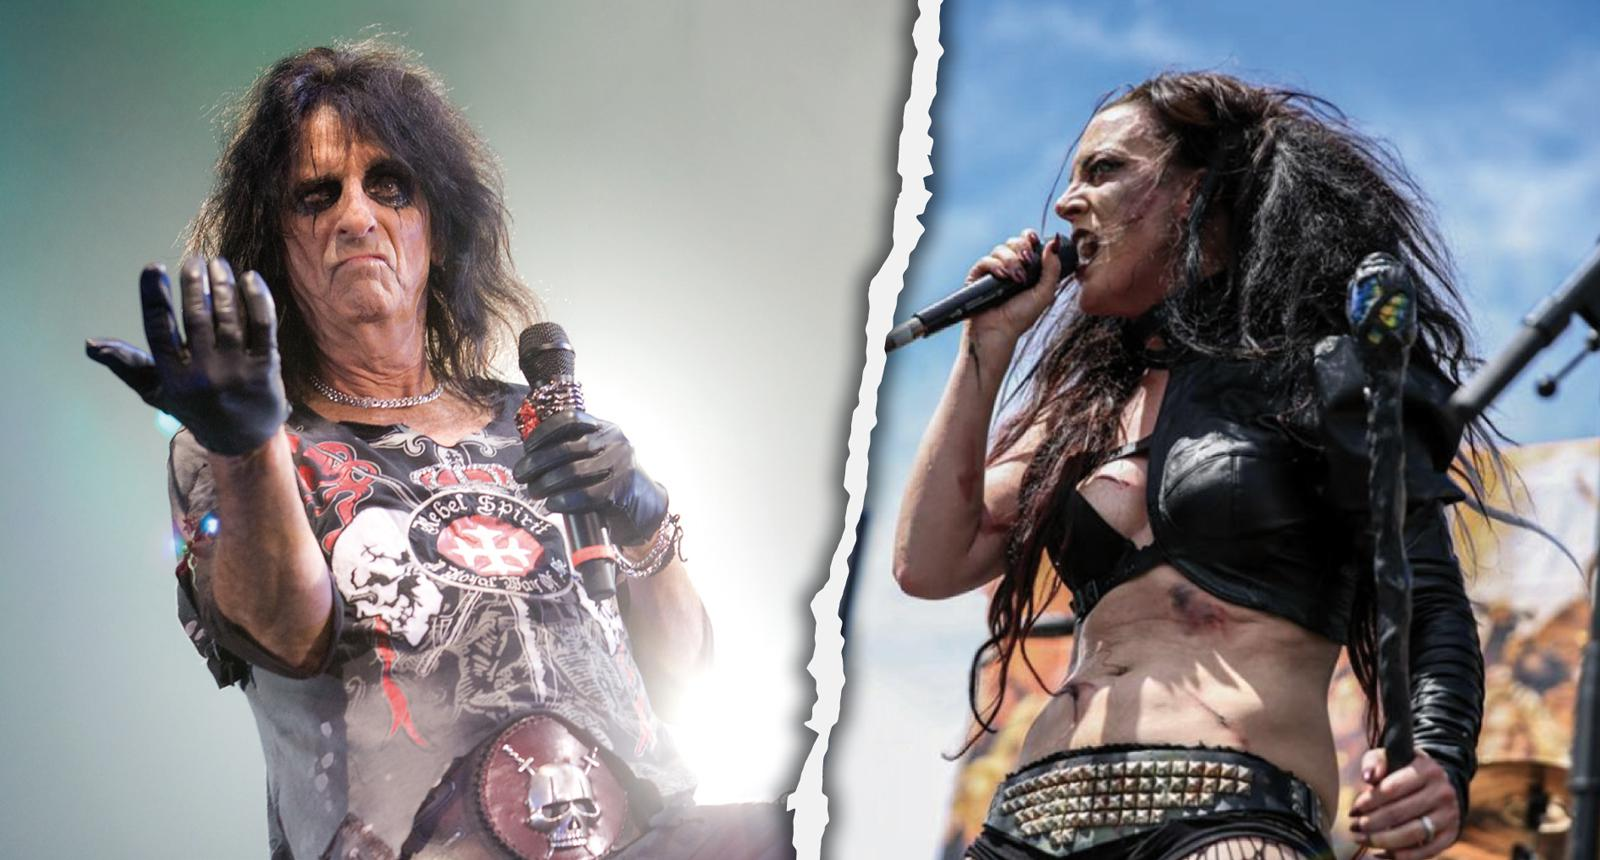 ALICE COOPER, CALICO COOPER – THE COOPER LEGACY